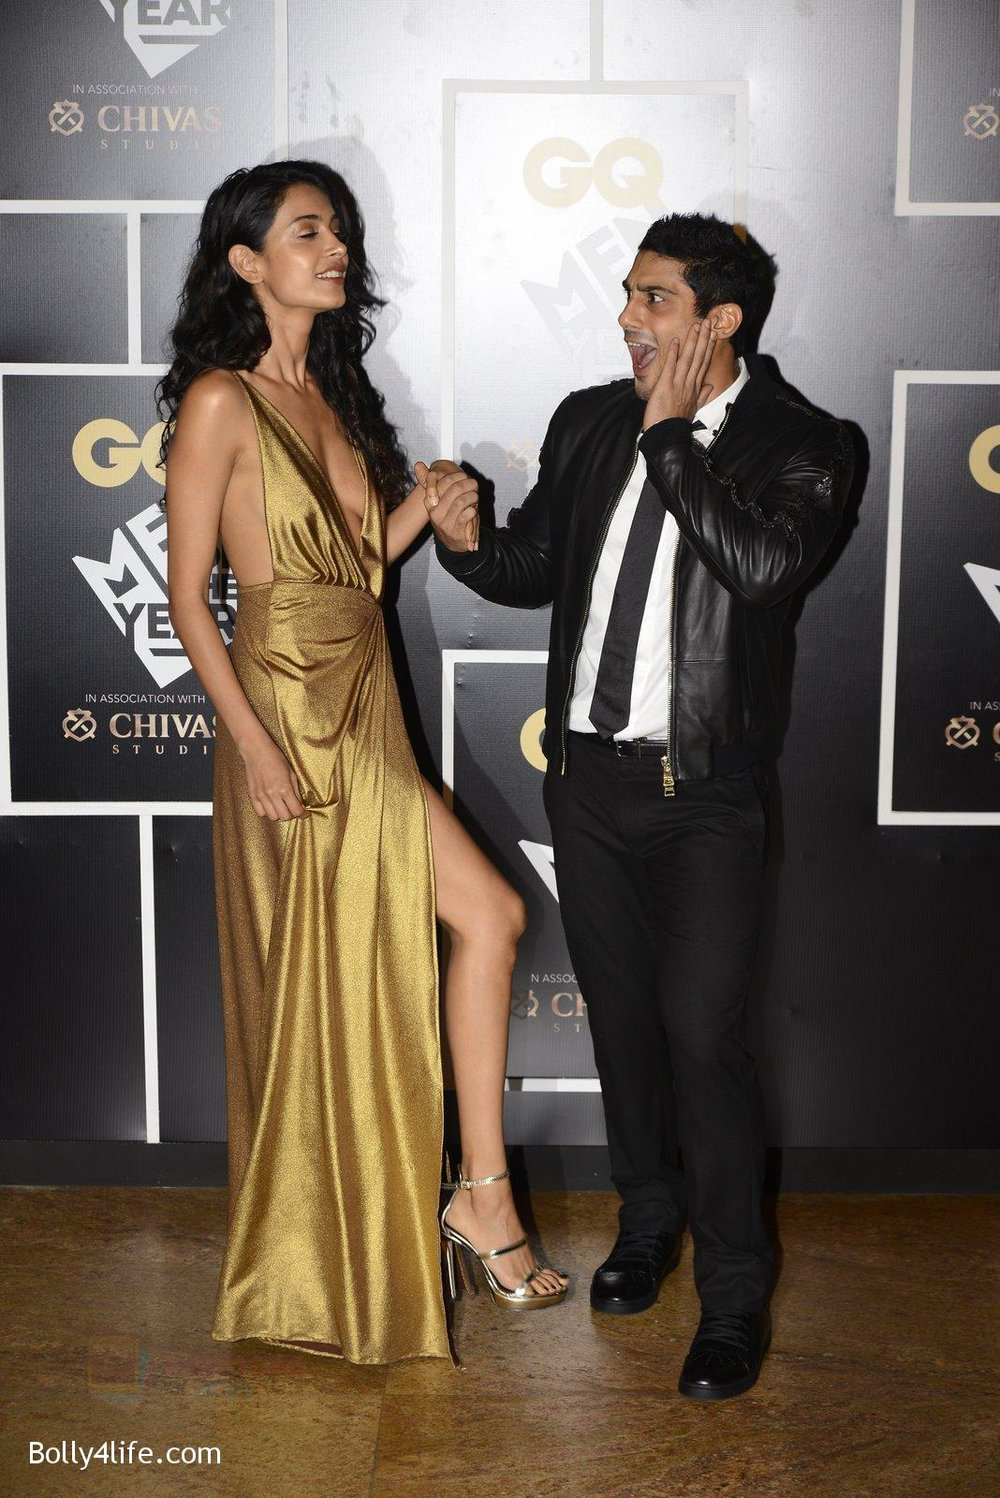 Sarah-Jane-Dias-at-GQ-MEN-OF-THE-YEAR-on-27th-Sept-2016-1096.jpg